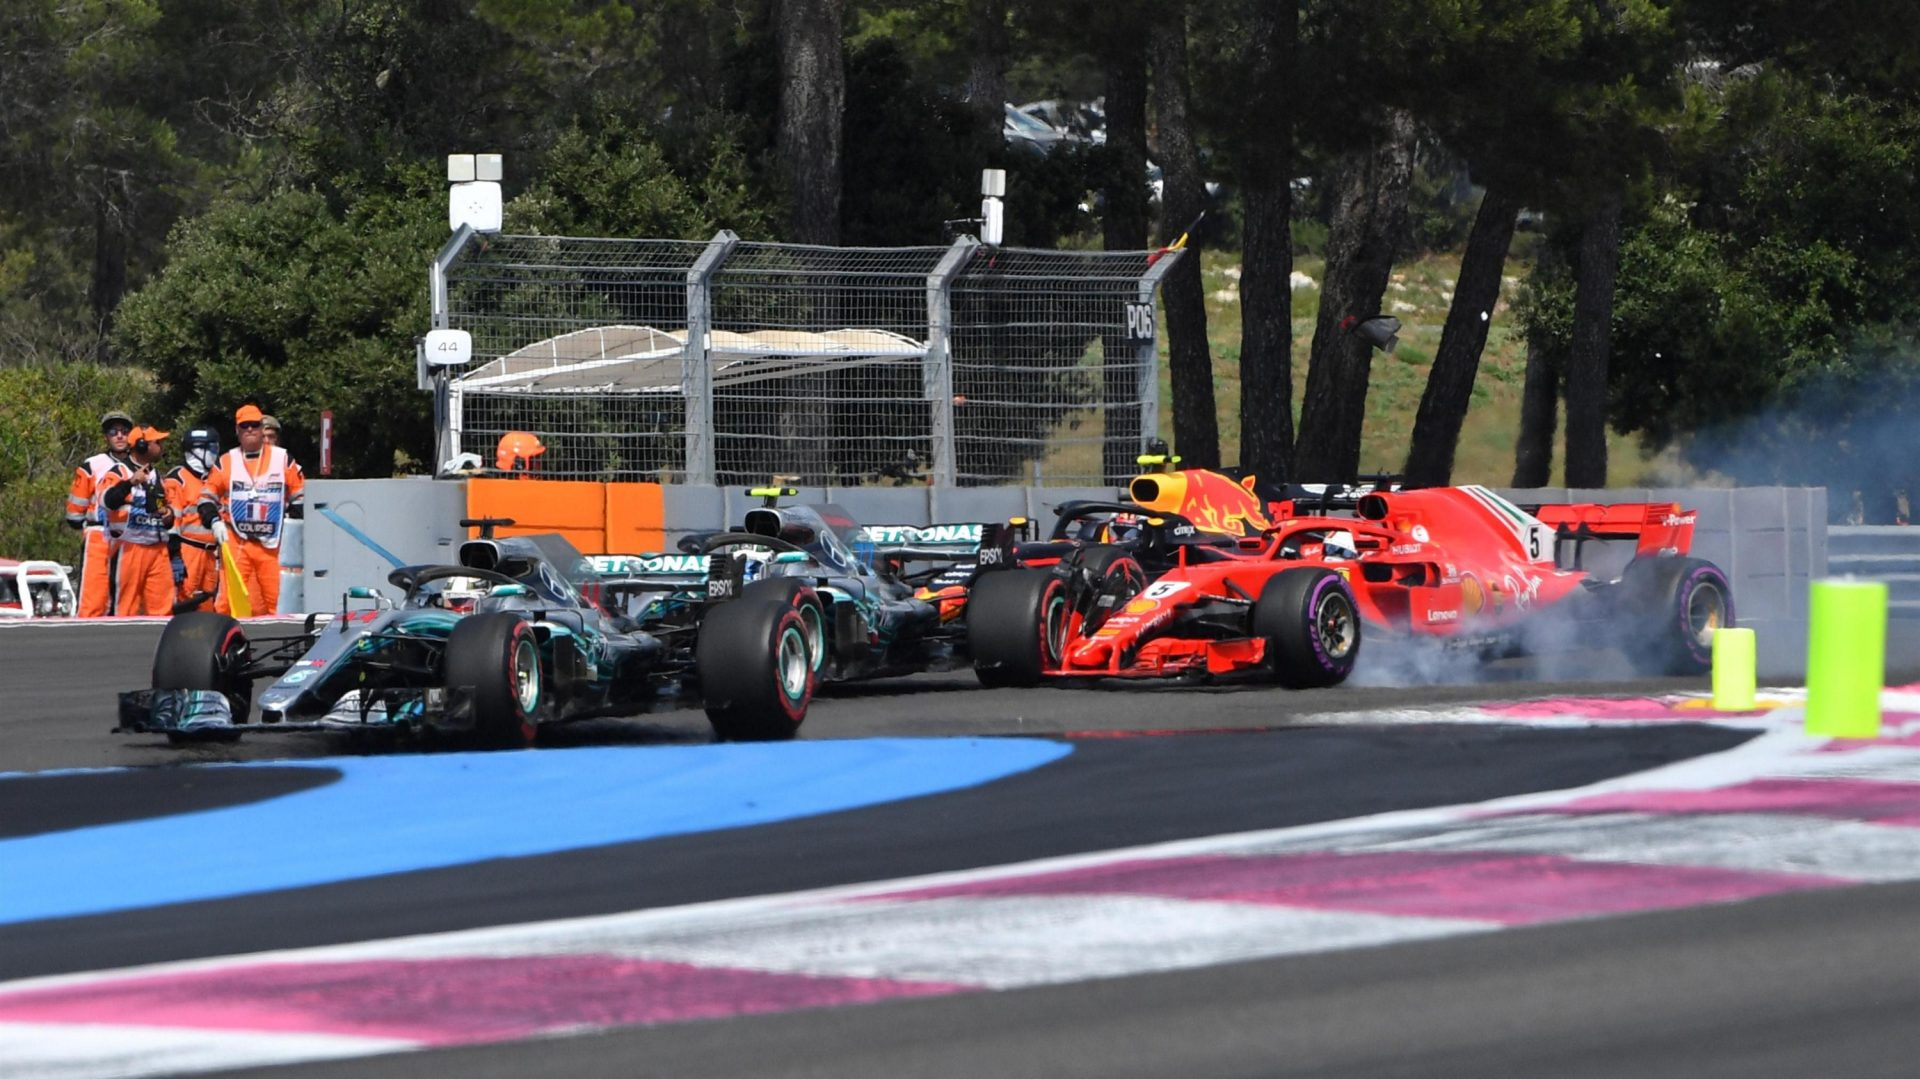 Hamilton Reigns Supreme In France F1 2018 The Auto Loons Vettel Expects Indian Circuit To Be Secondfastest Track Mark Sutton Images